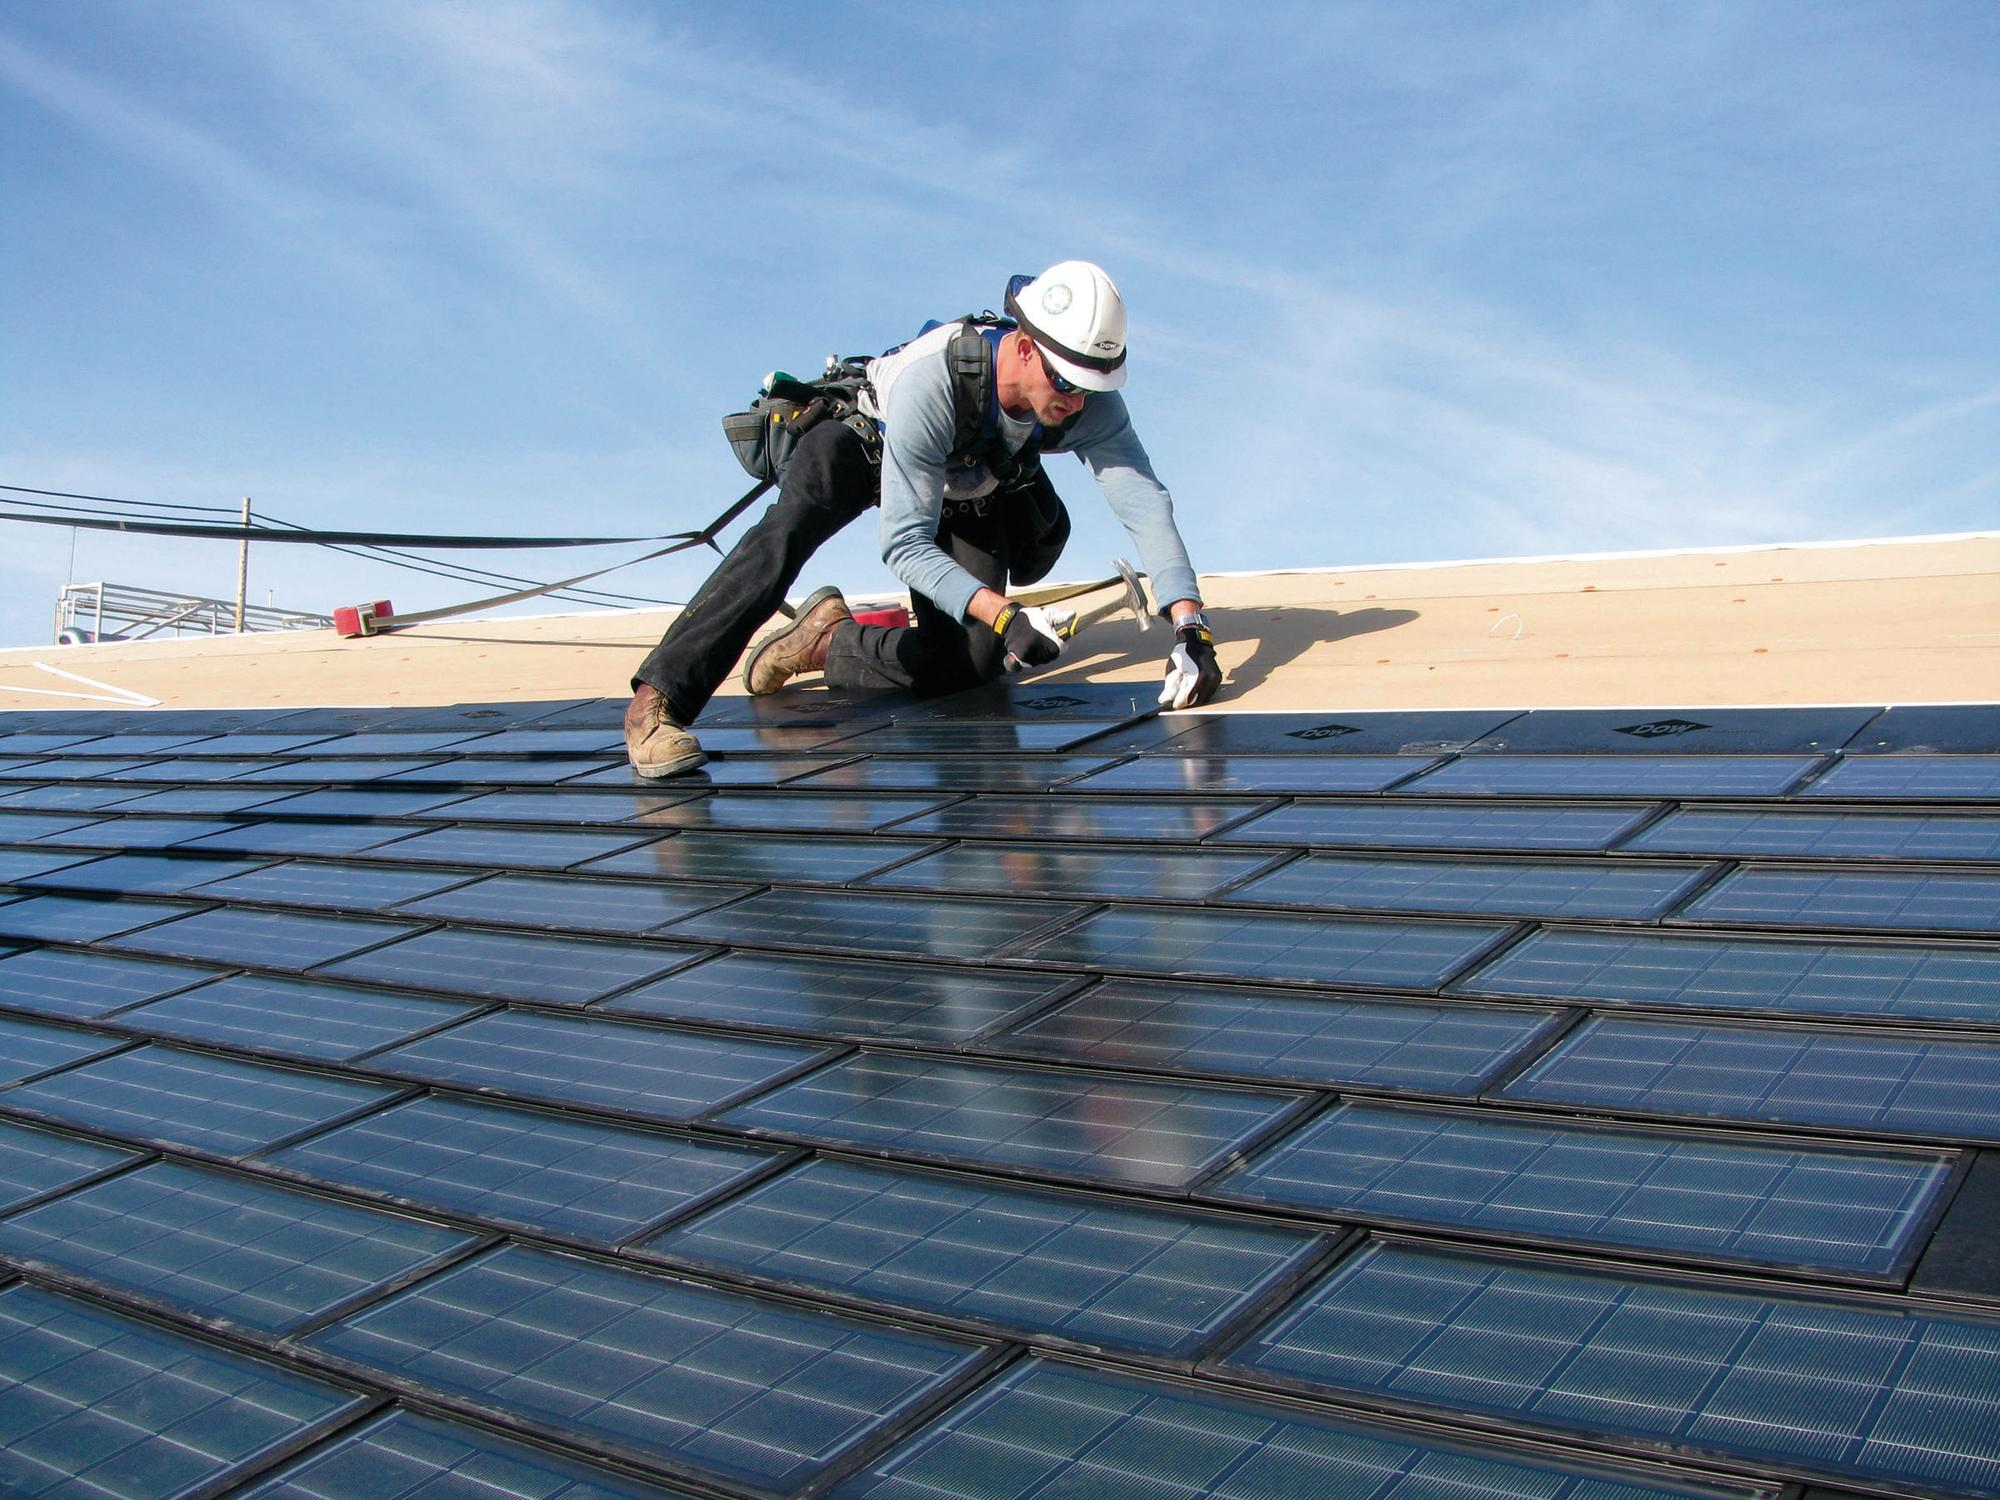 Choosing a Commercial Roofing Repair Contractor